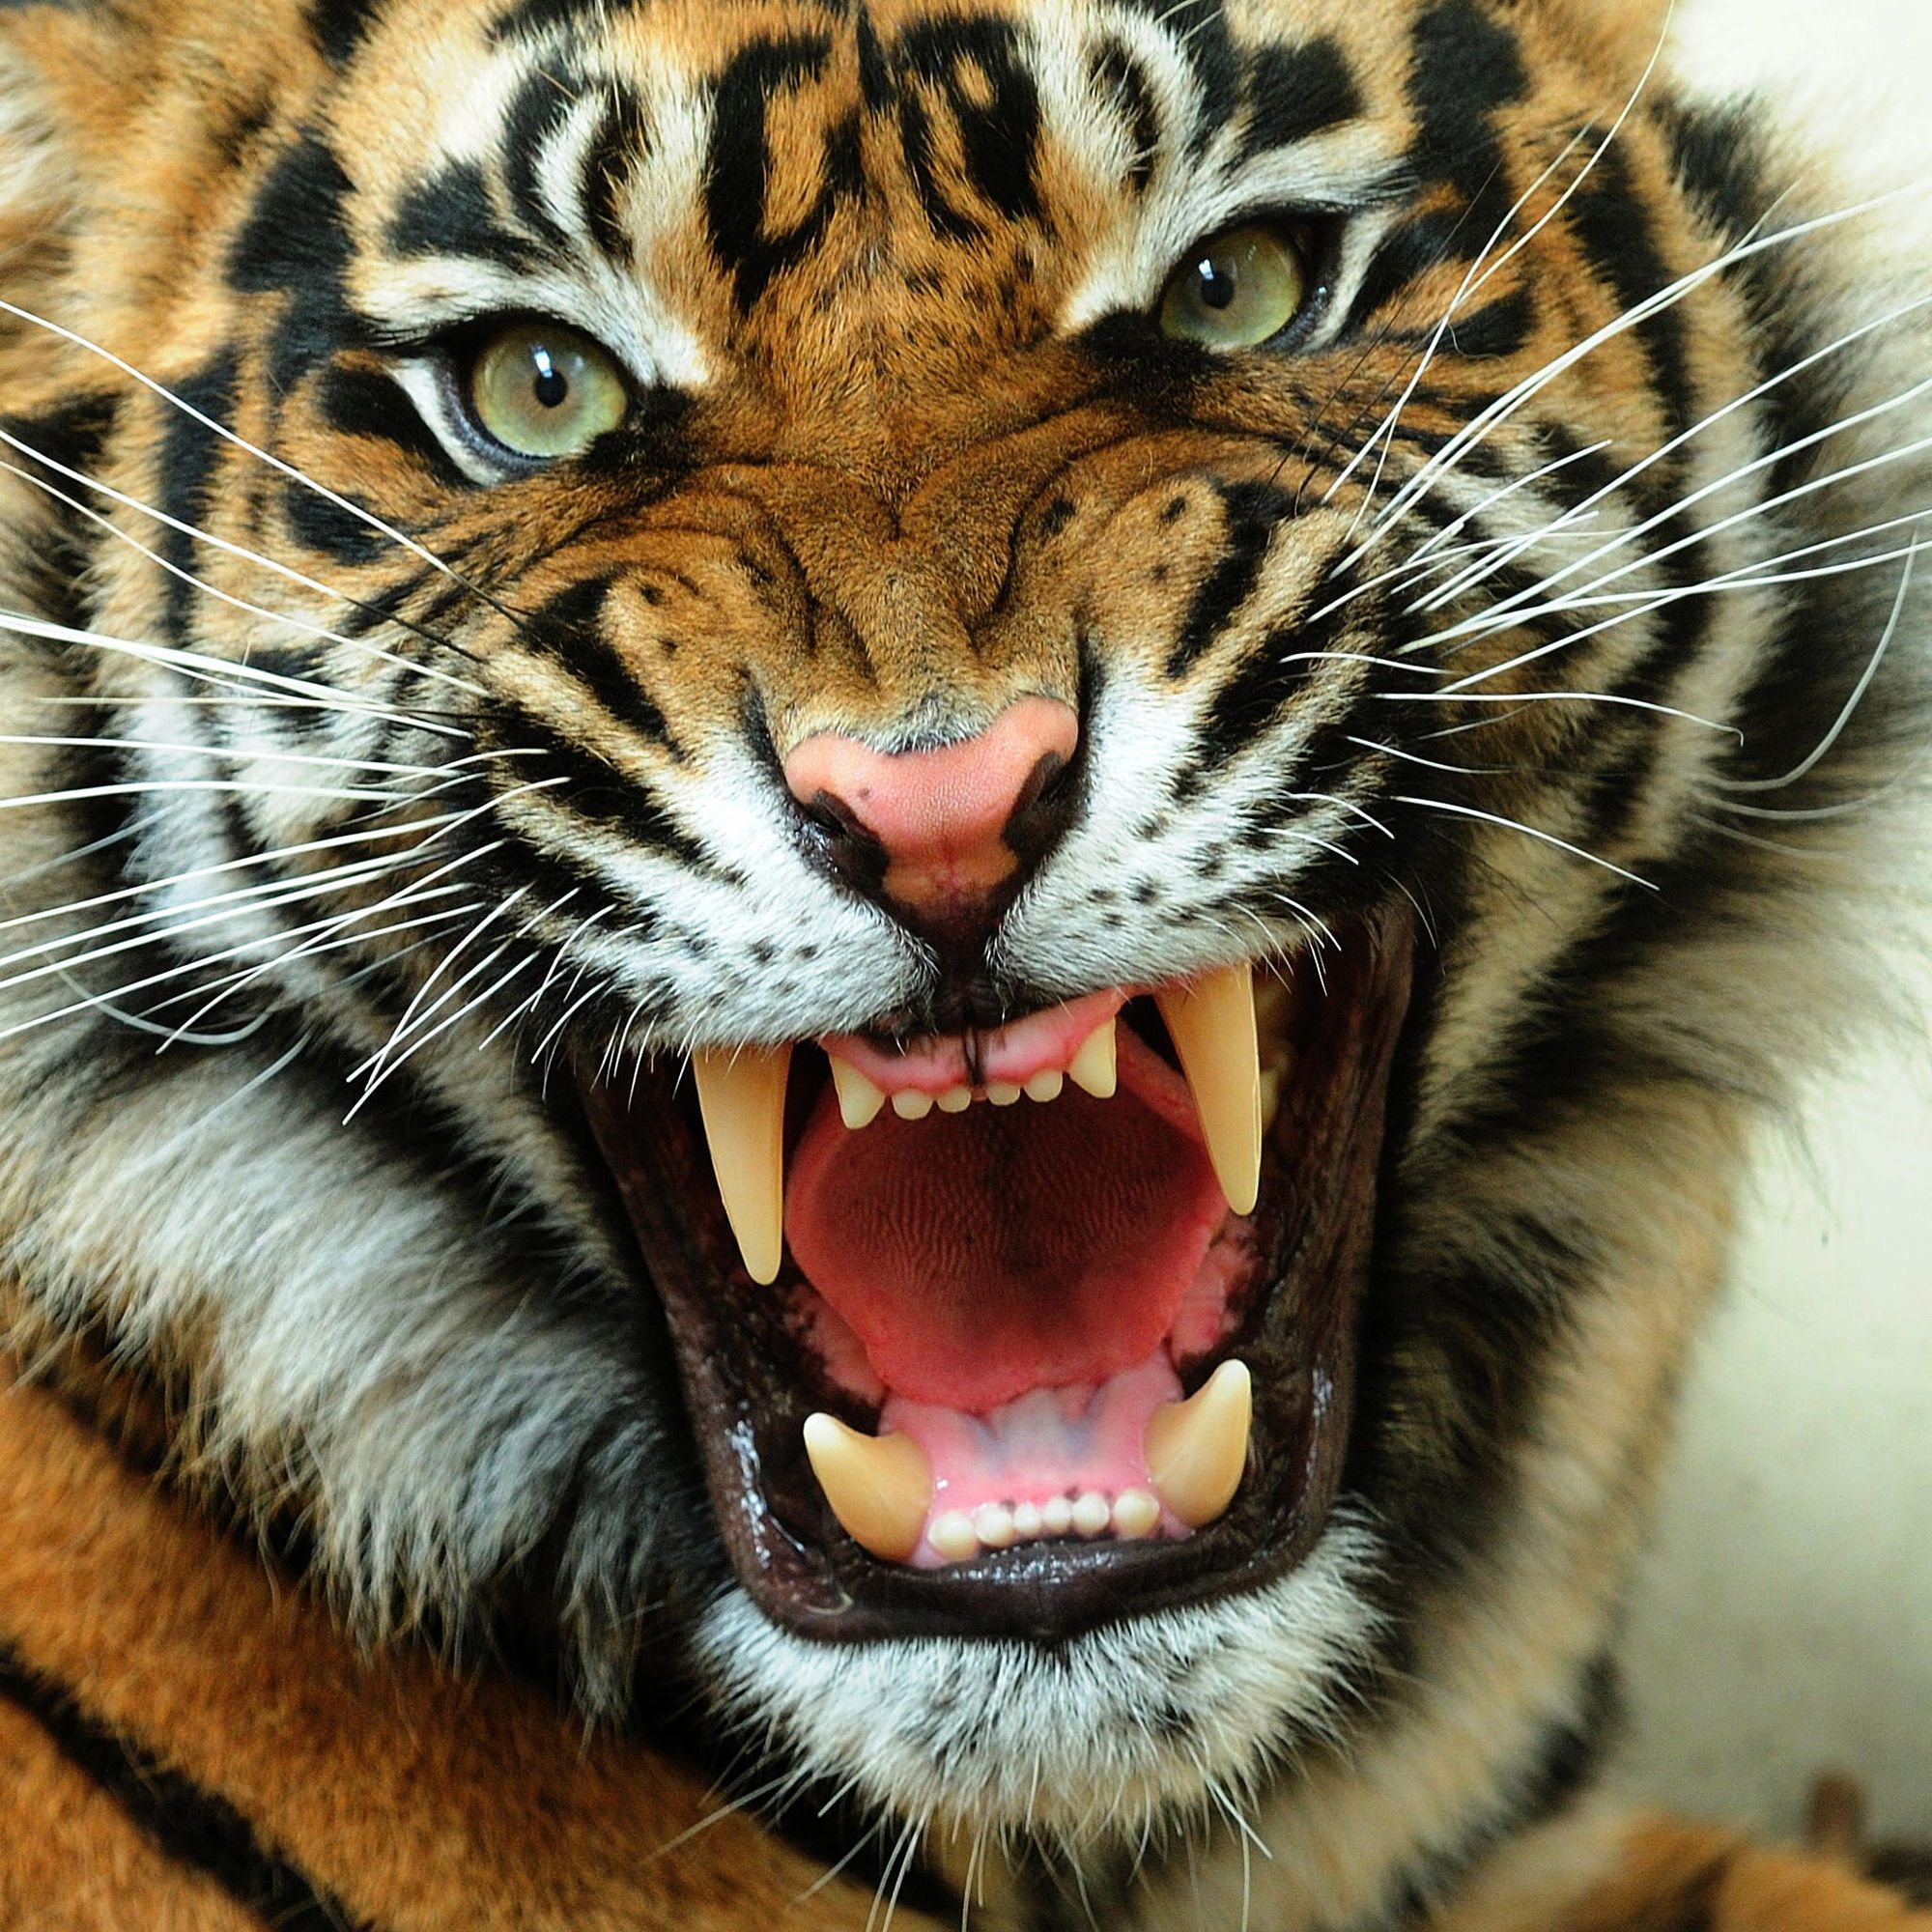 angry tiger photos - photo #3